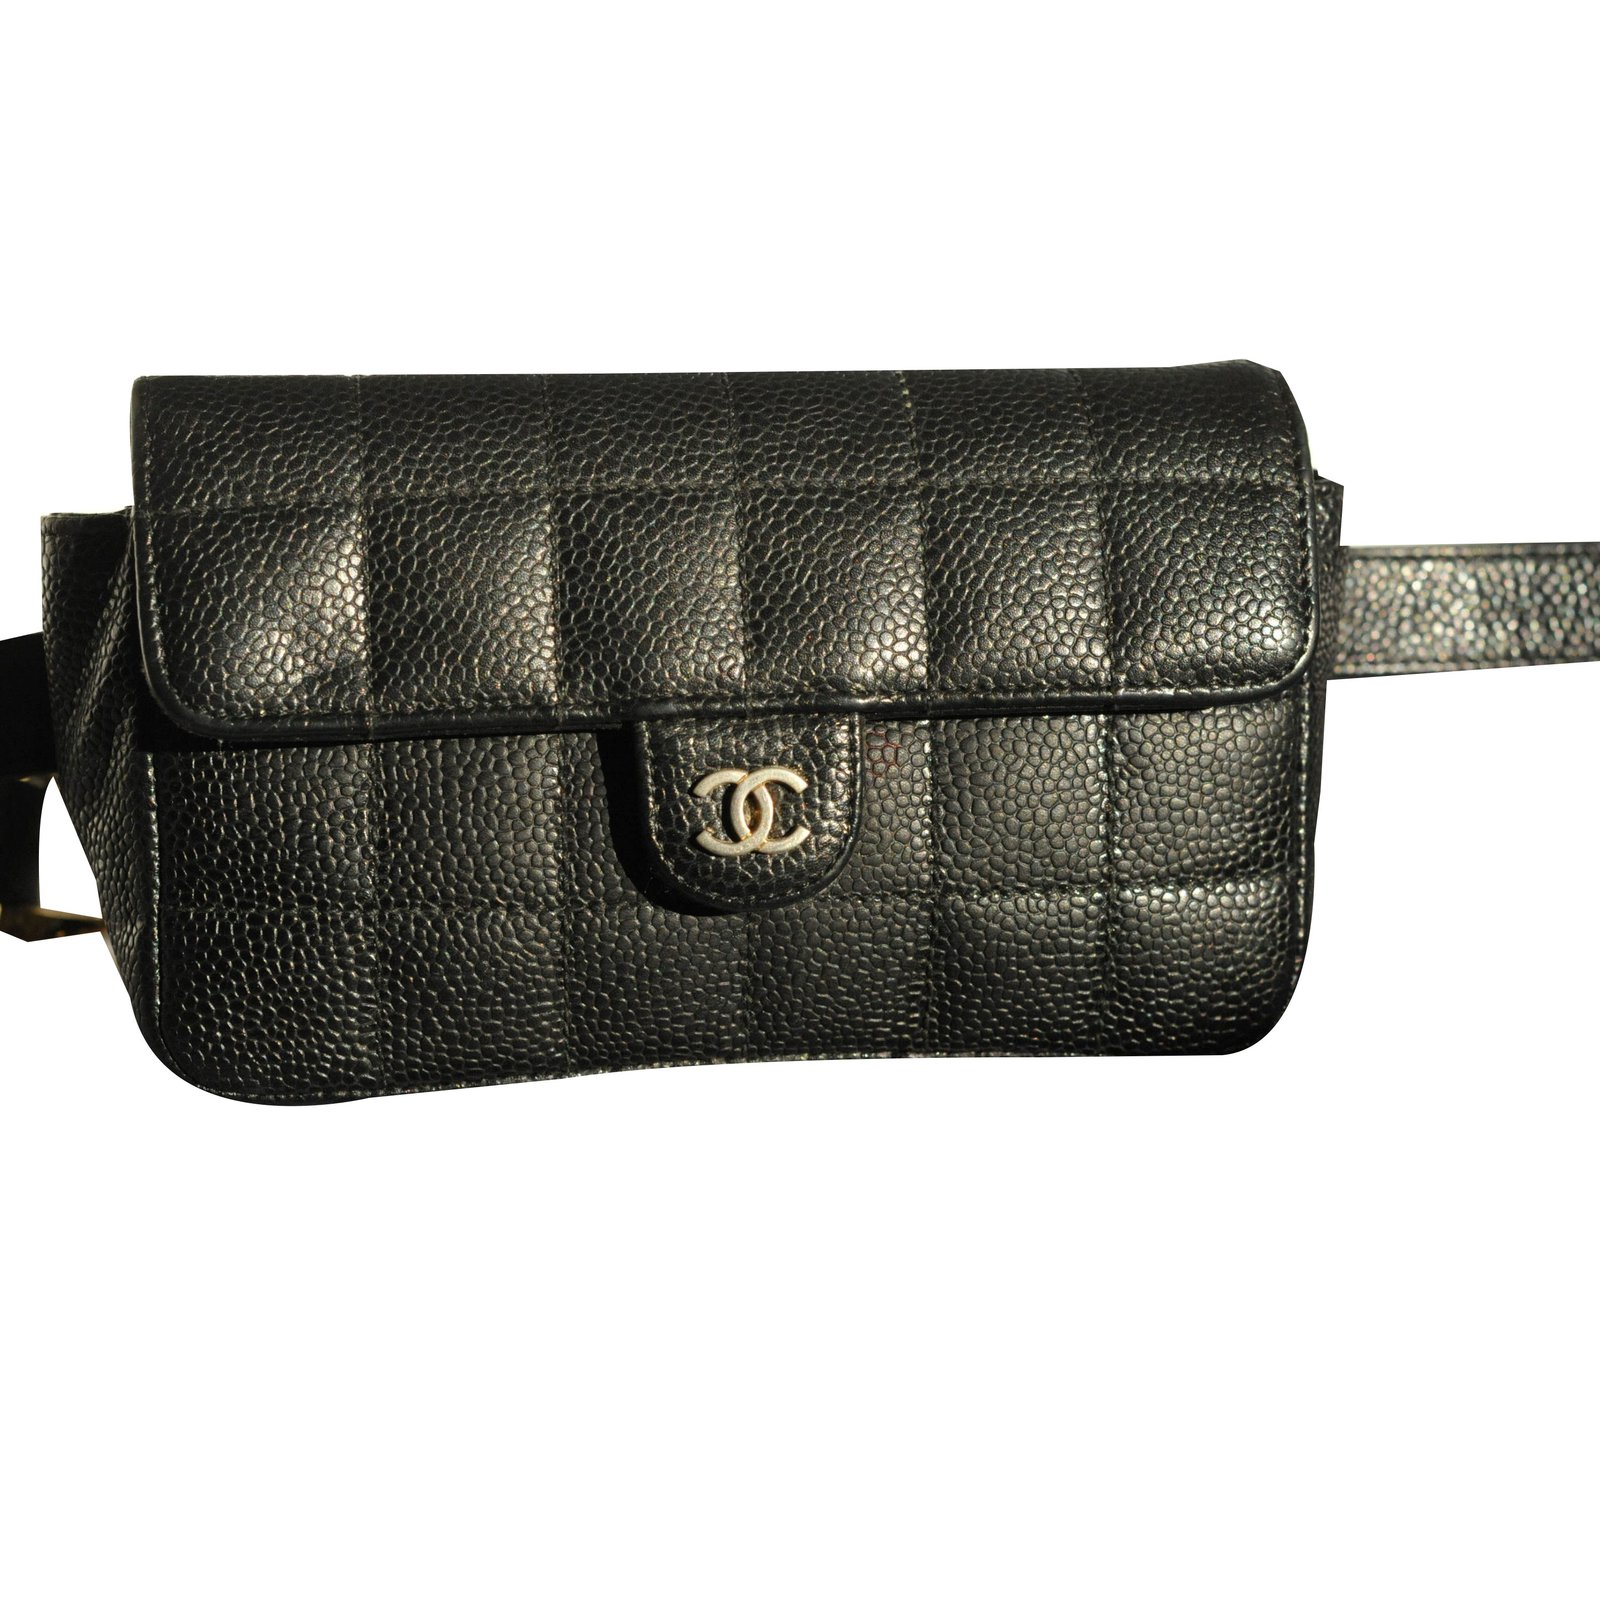 62840842c741 Chanel Uniform belt bag Clutch bags Leather Black ref.55355 - Joli ...